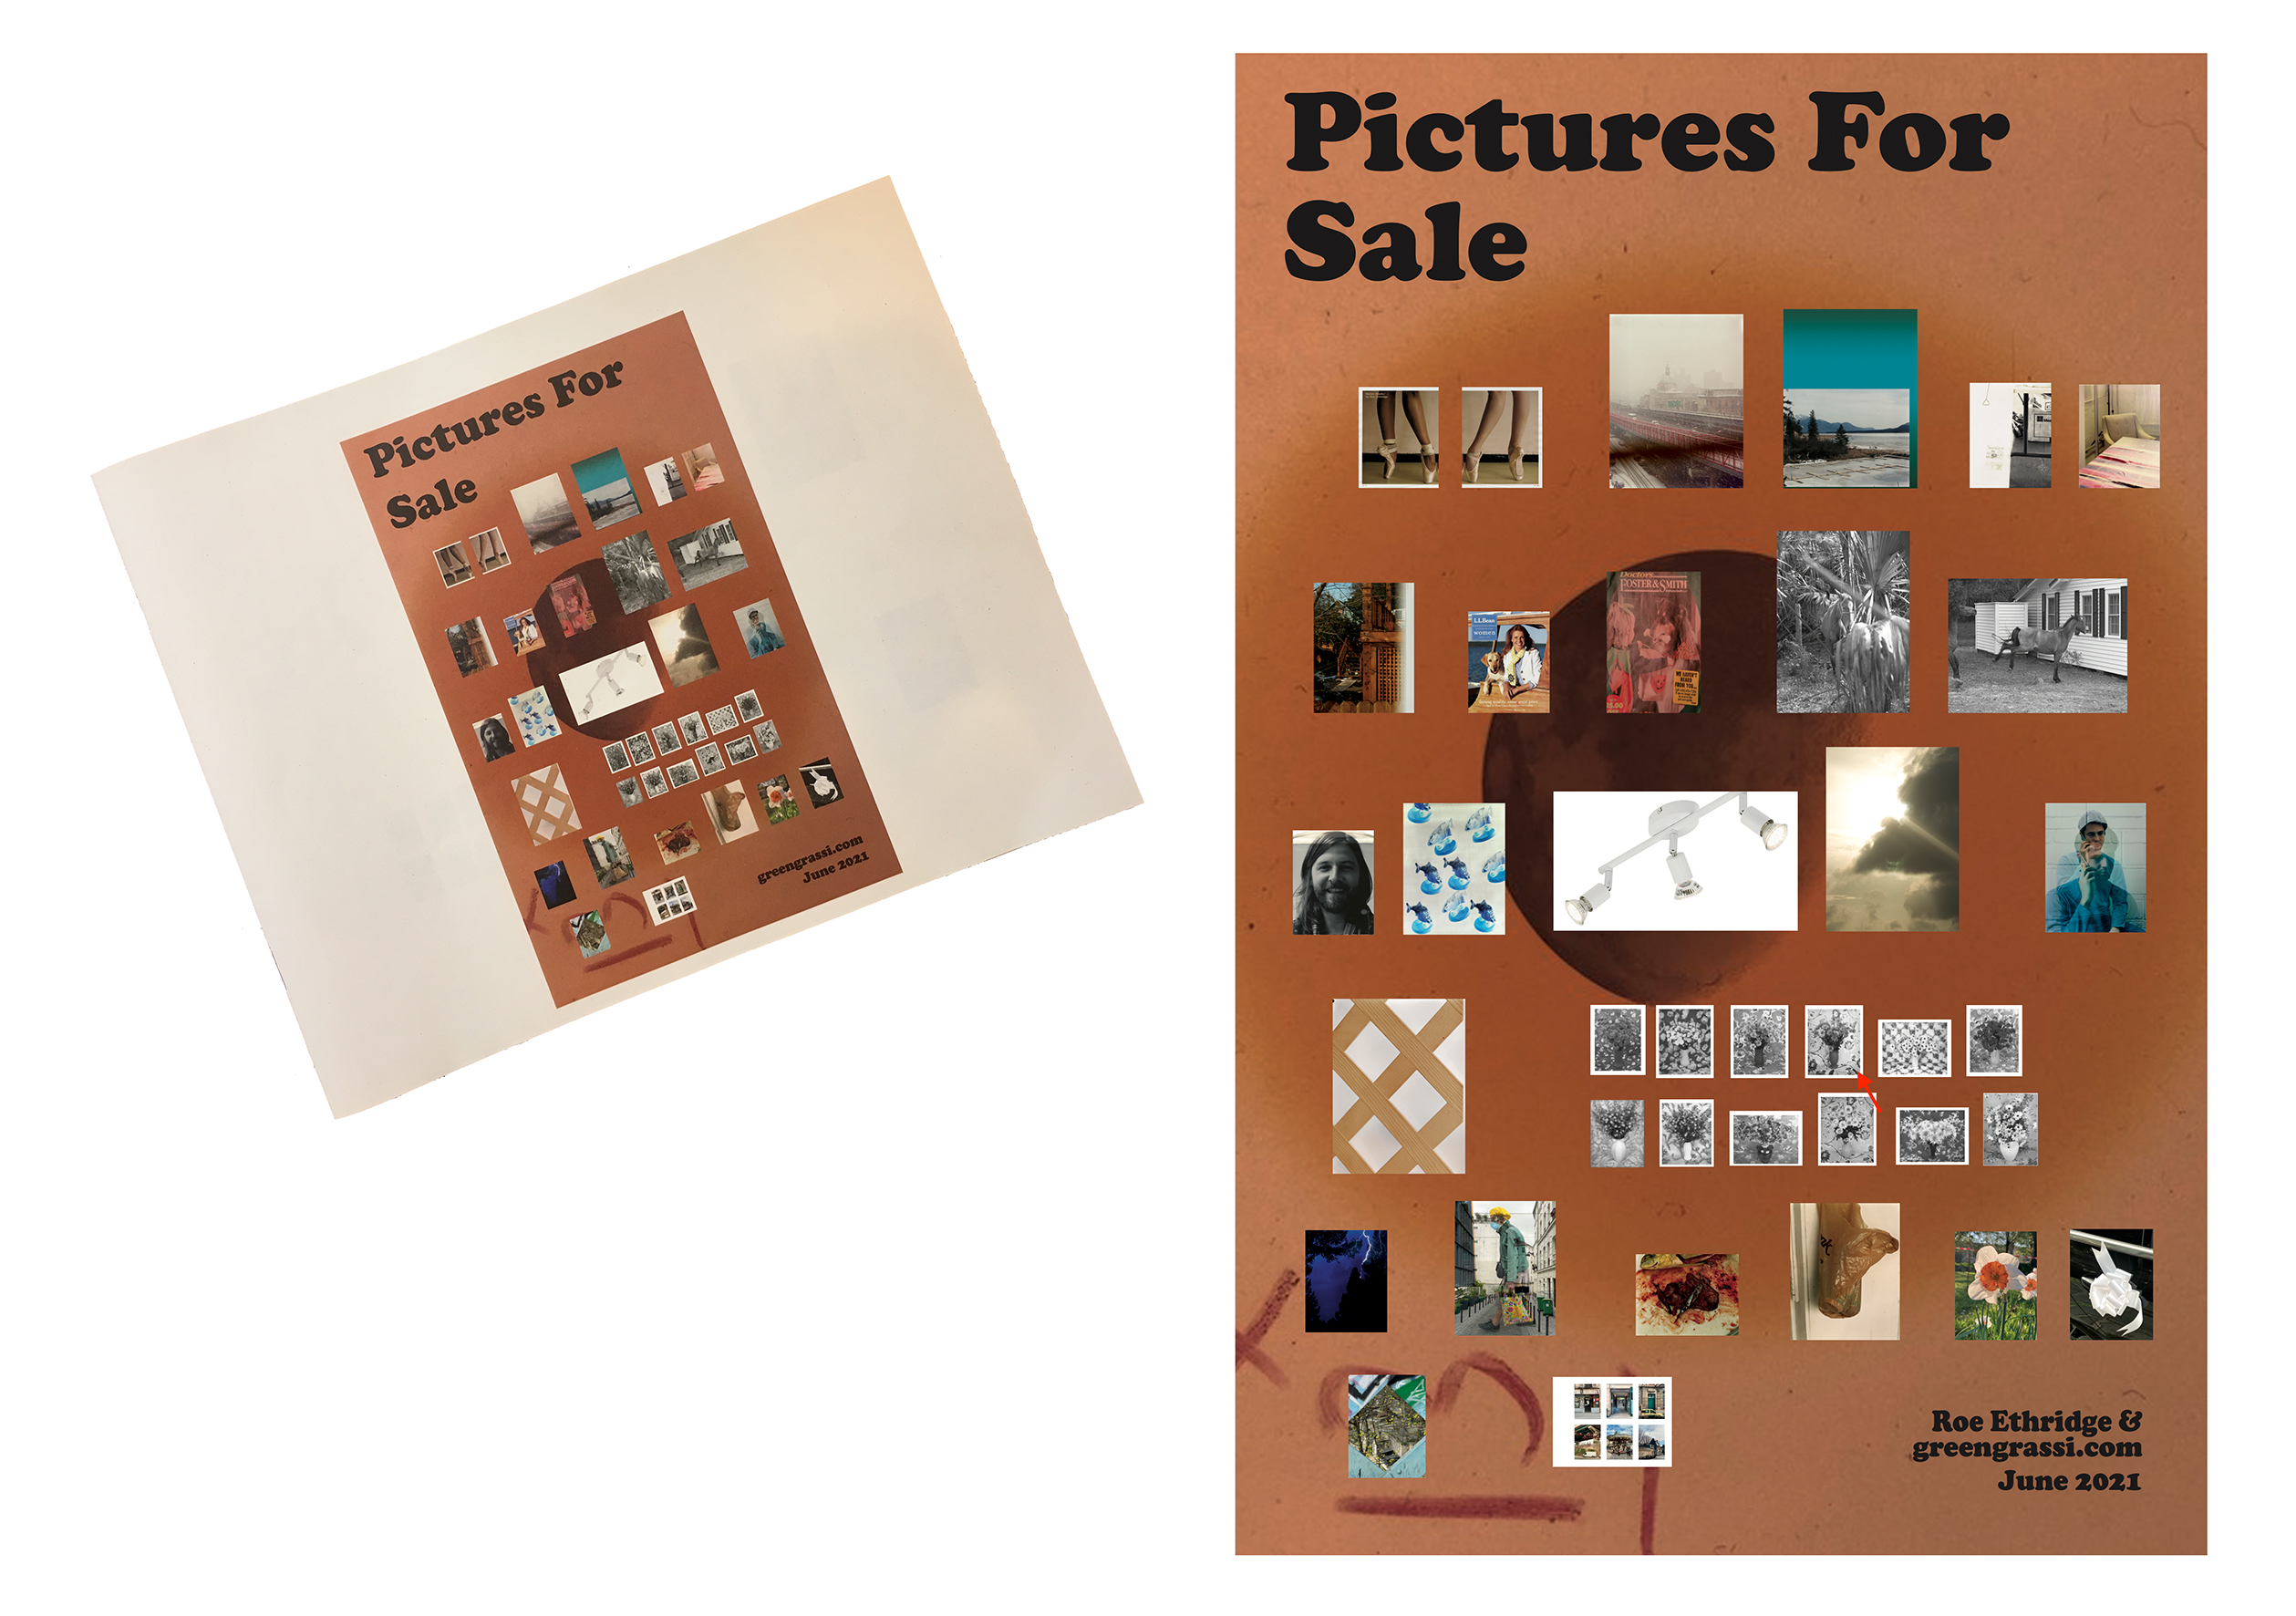 Pictures for Sale (Posters & Booklet)